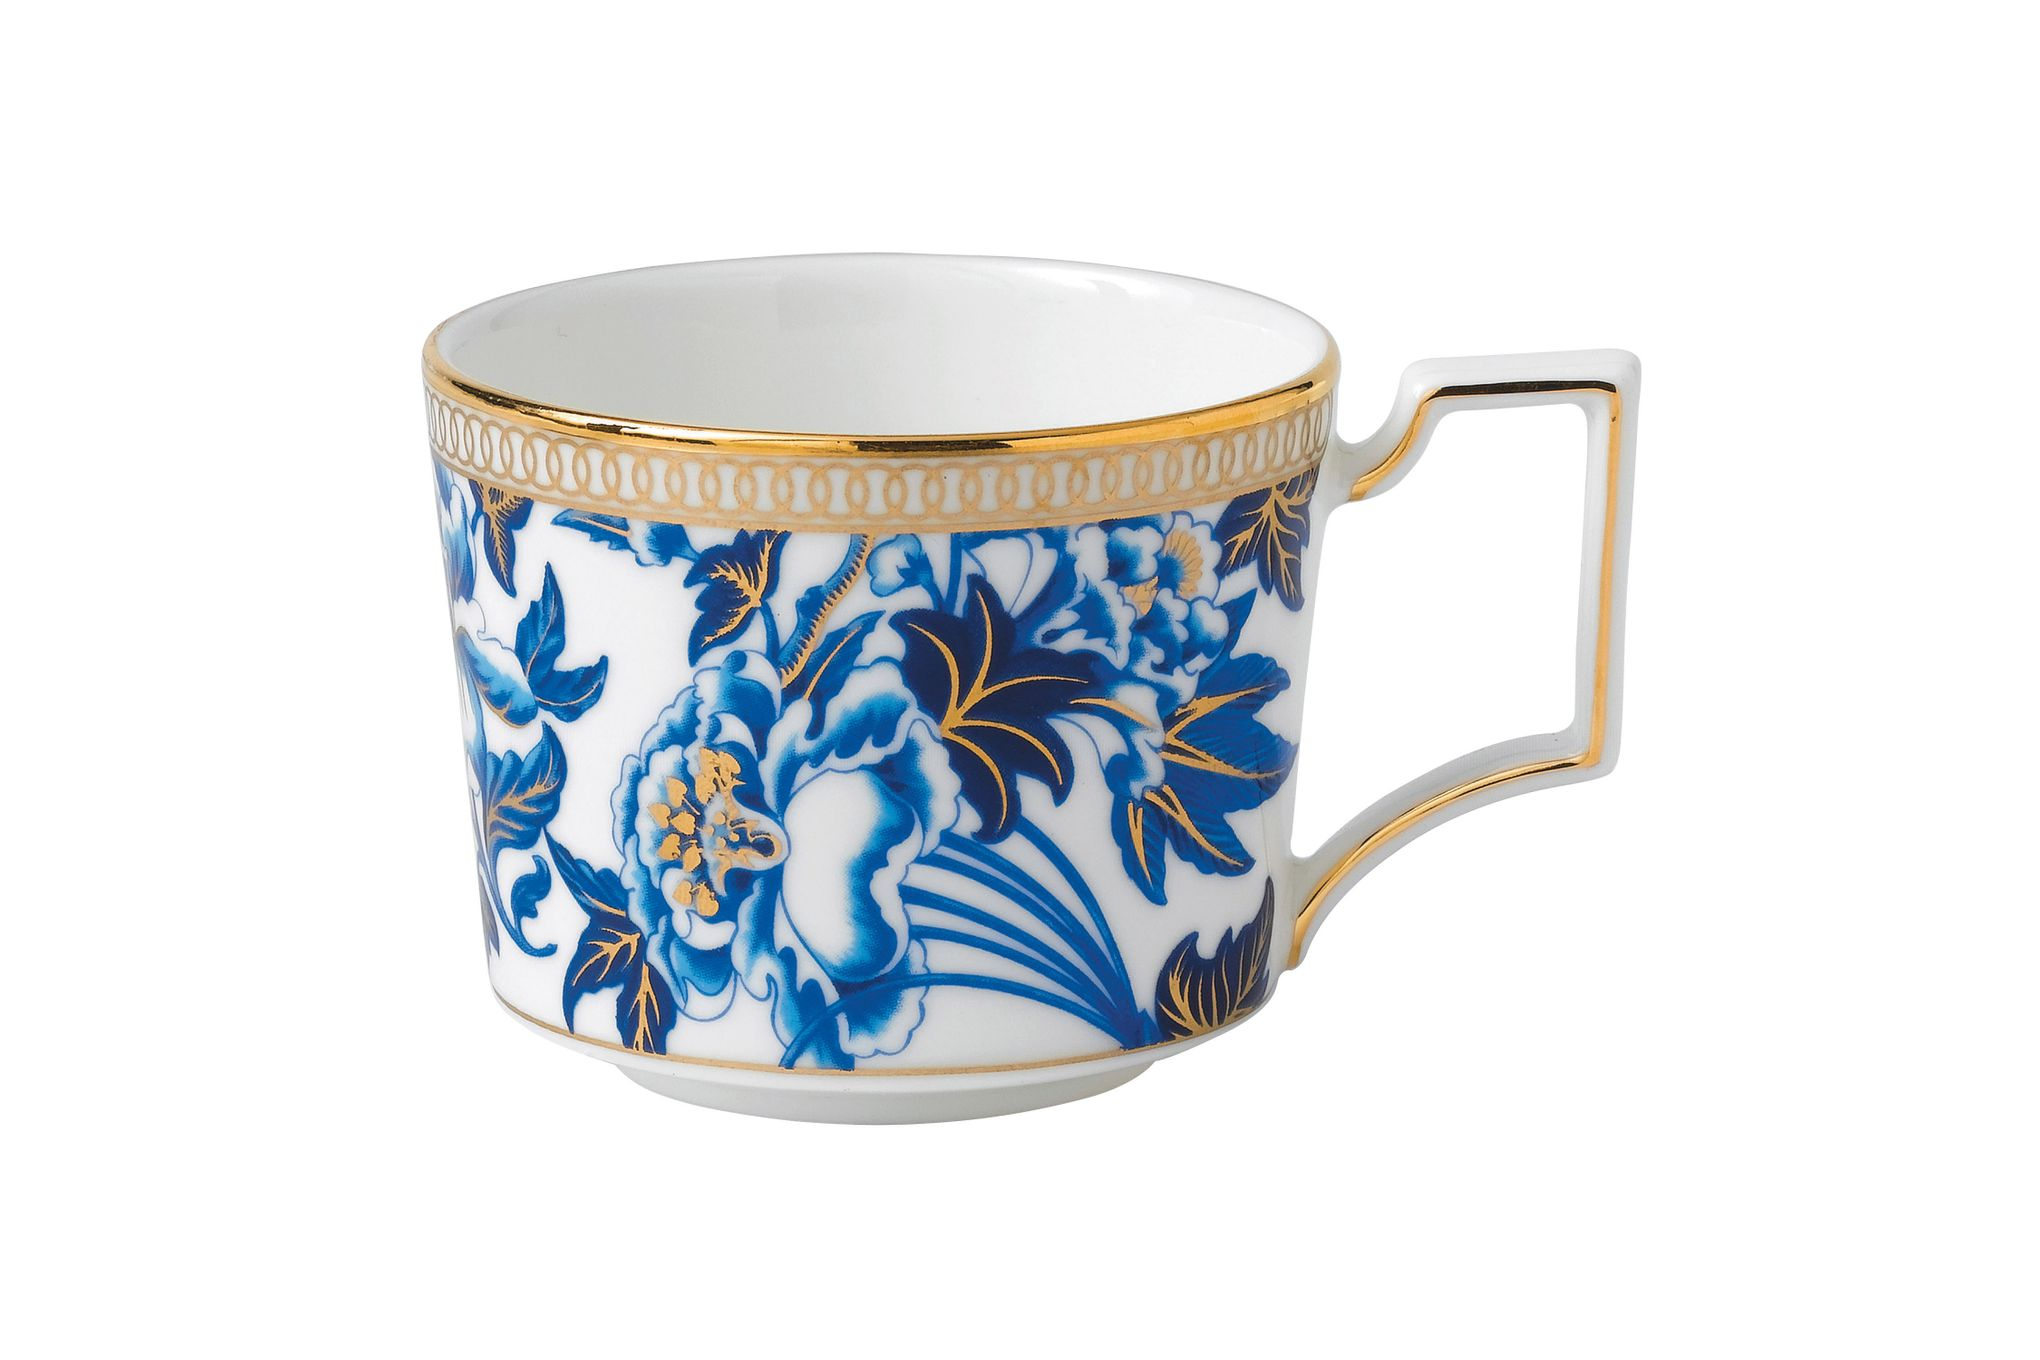 Wedgwood Hibiscus Espresso Cup thumb 1